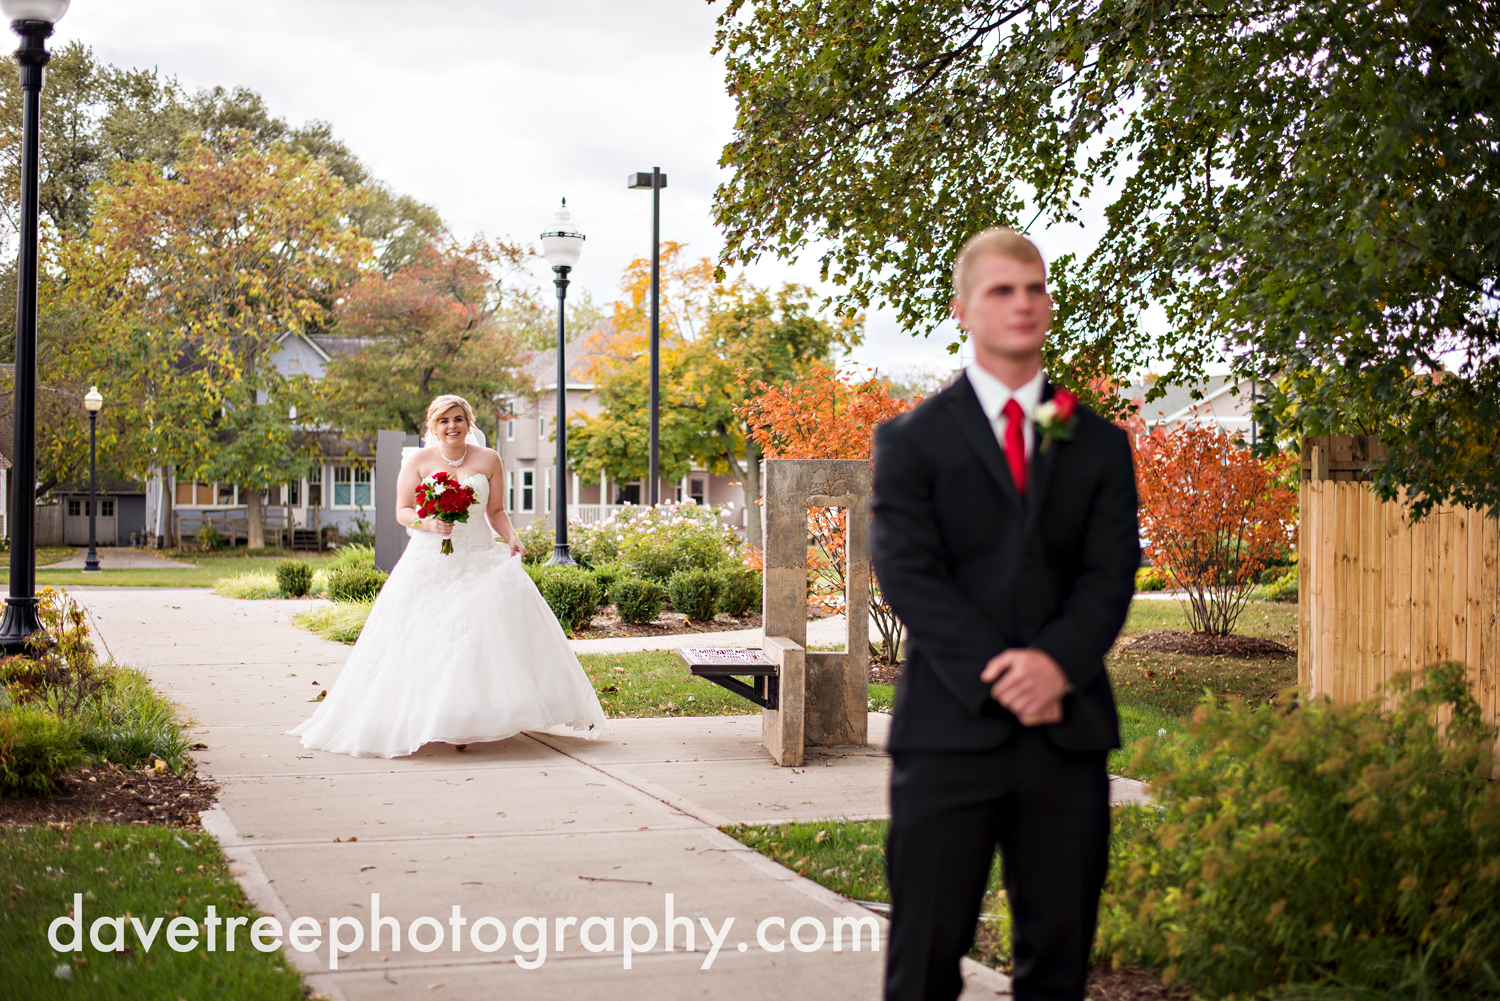 holland_wedding_photographer_80.jpg